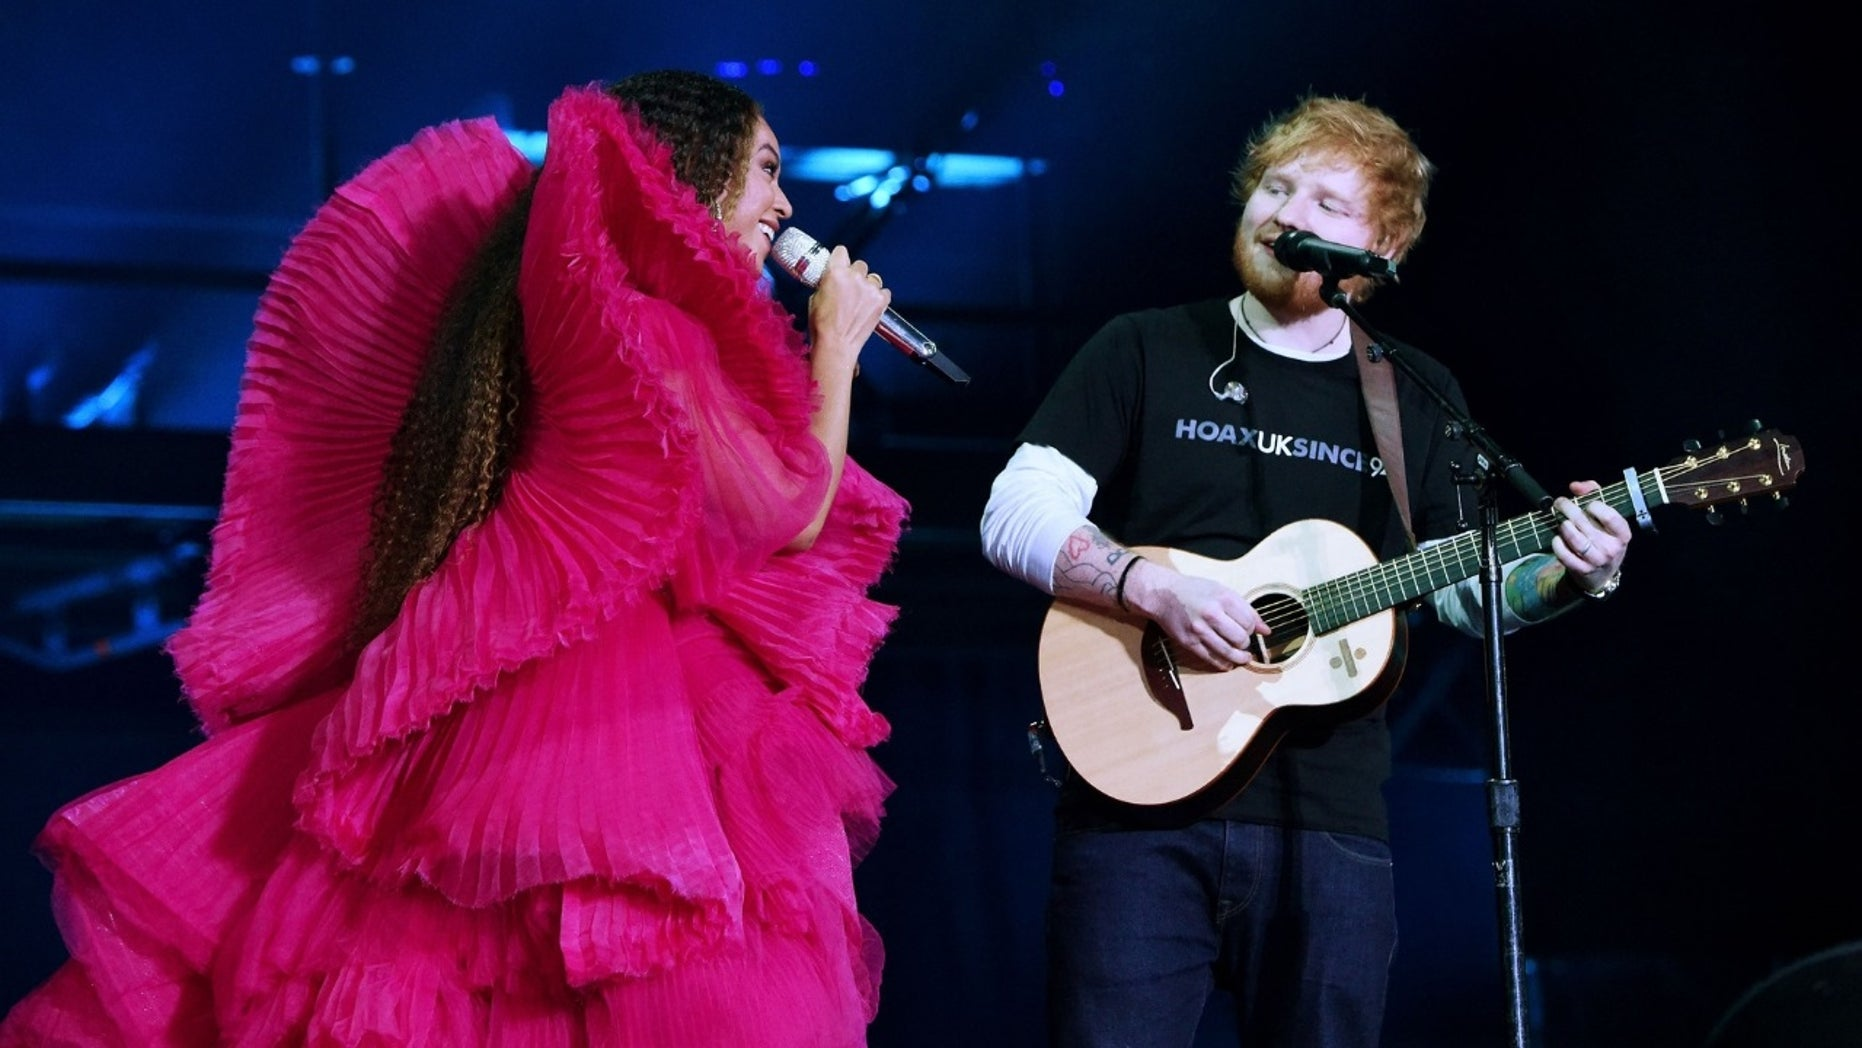 Ed Sheeran Responds To THOSE Comments About His Outfit Compared To Beyonce's!